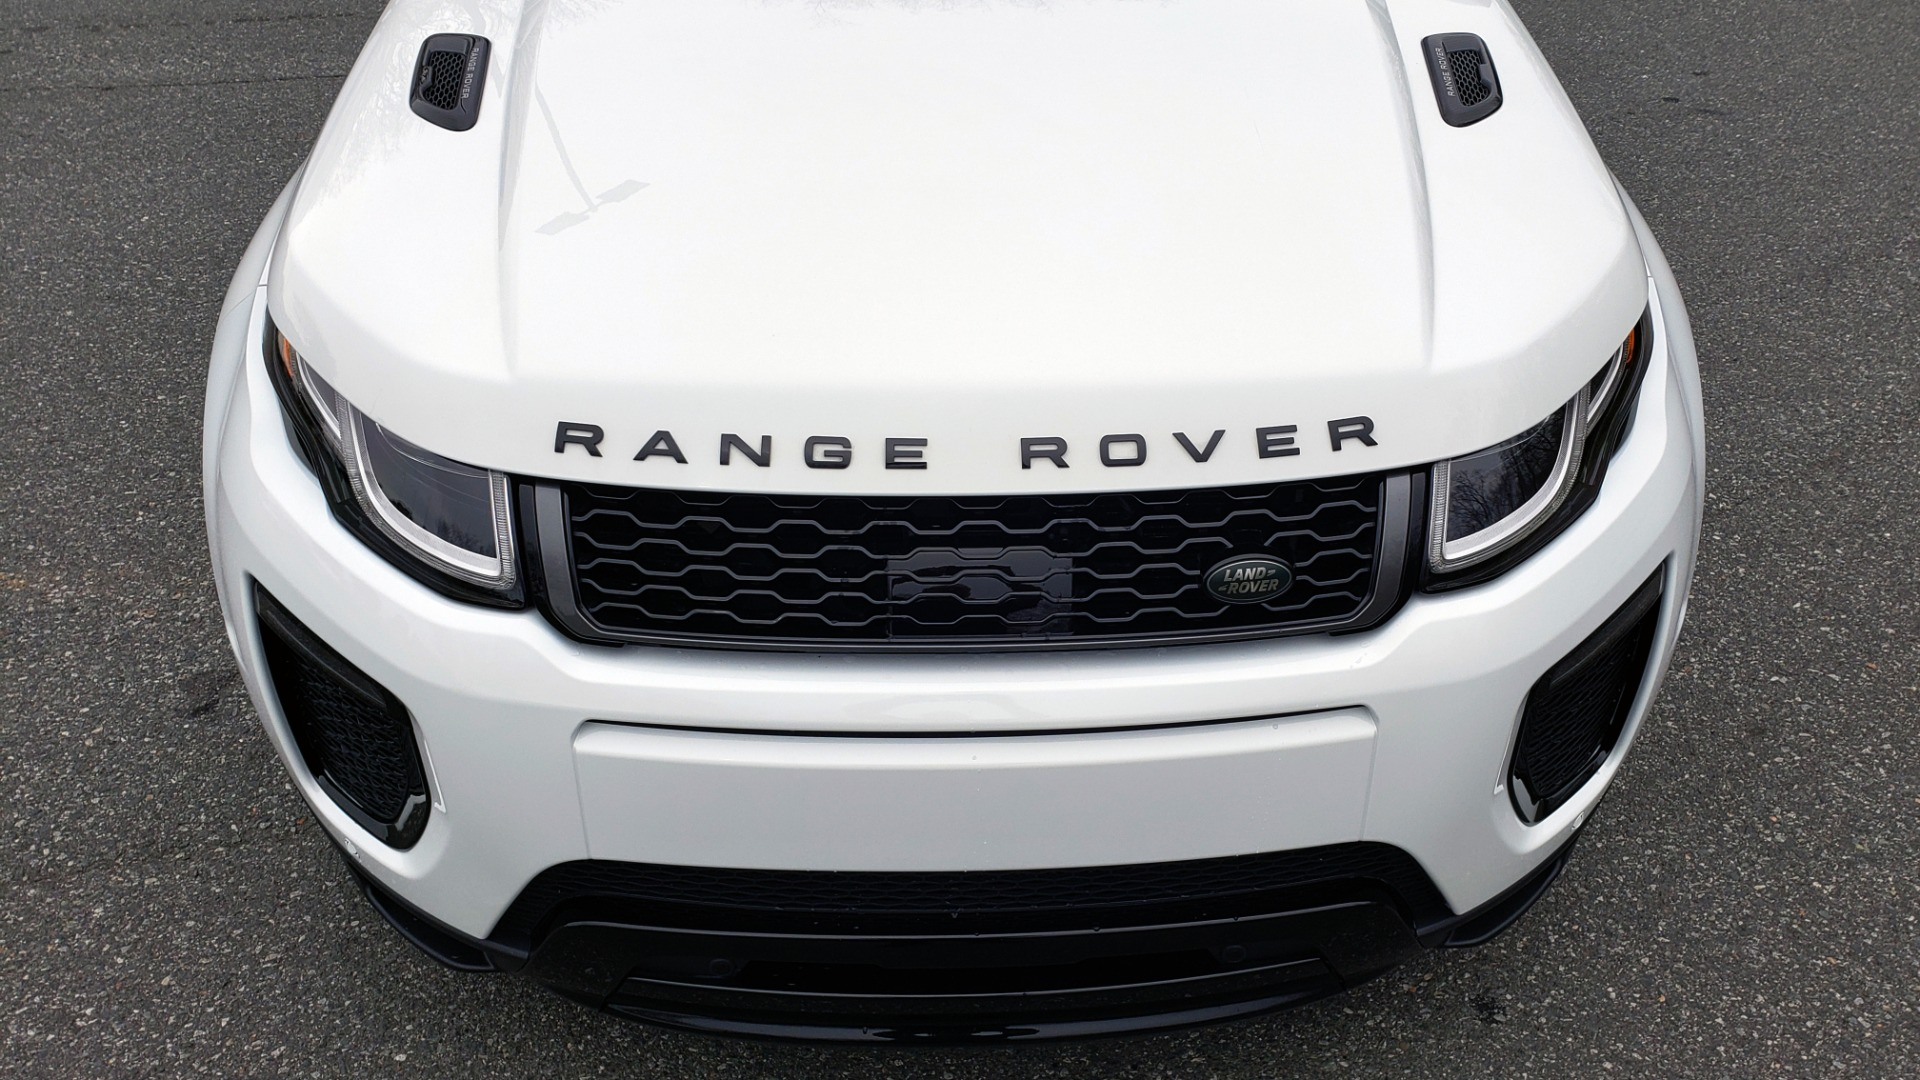 Used 2016 Land Rover RANGE ROVER EVOQUE HSE DYNAMIC / AWD / NAV / PANO-ROOF / REARVIEW / 22-IN WHEELS for sale Sold at Formula Imports in Charlotte NC 28227 17